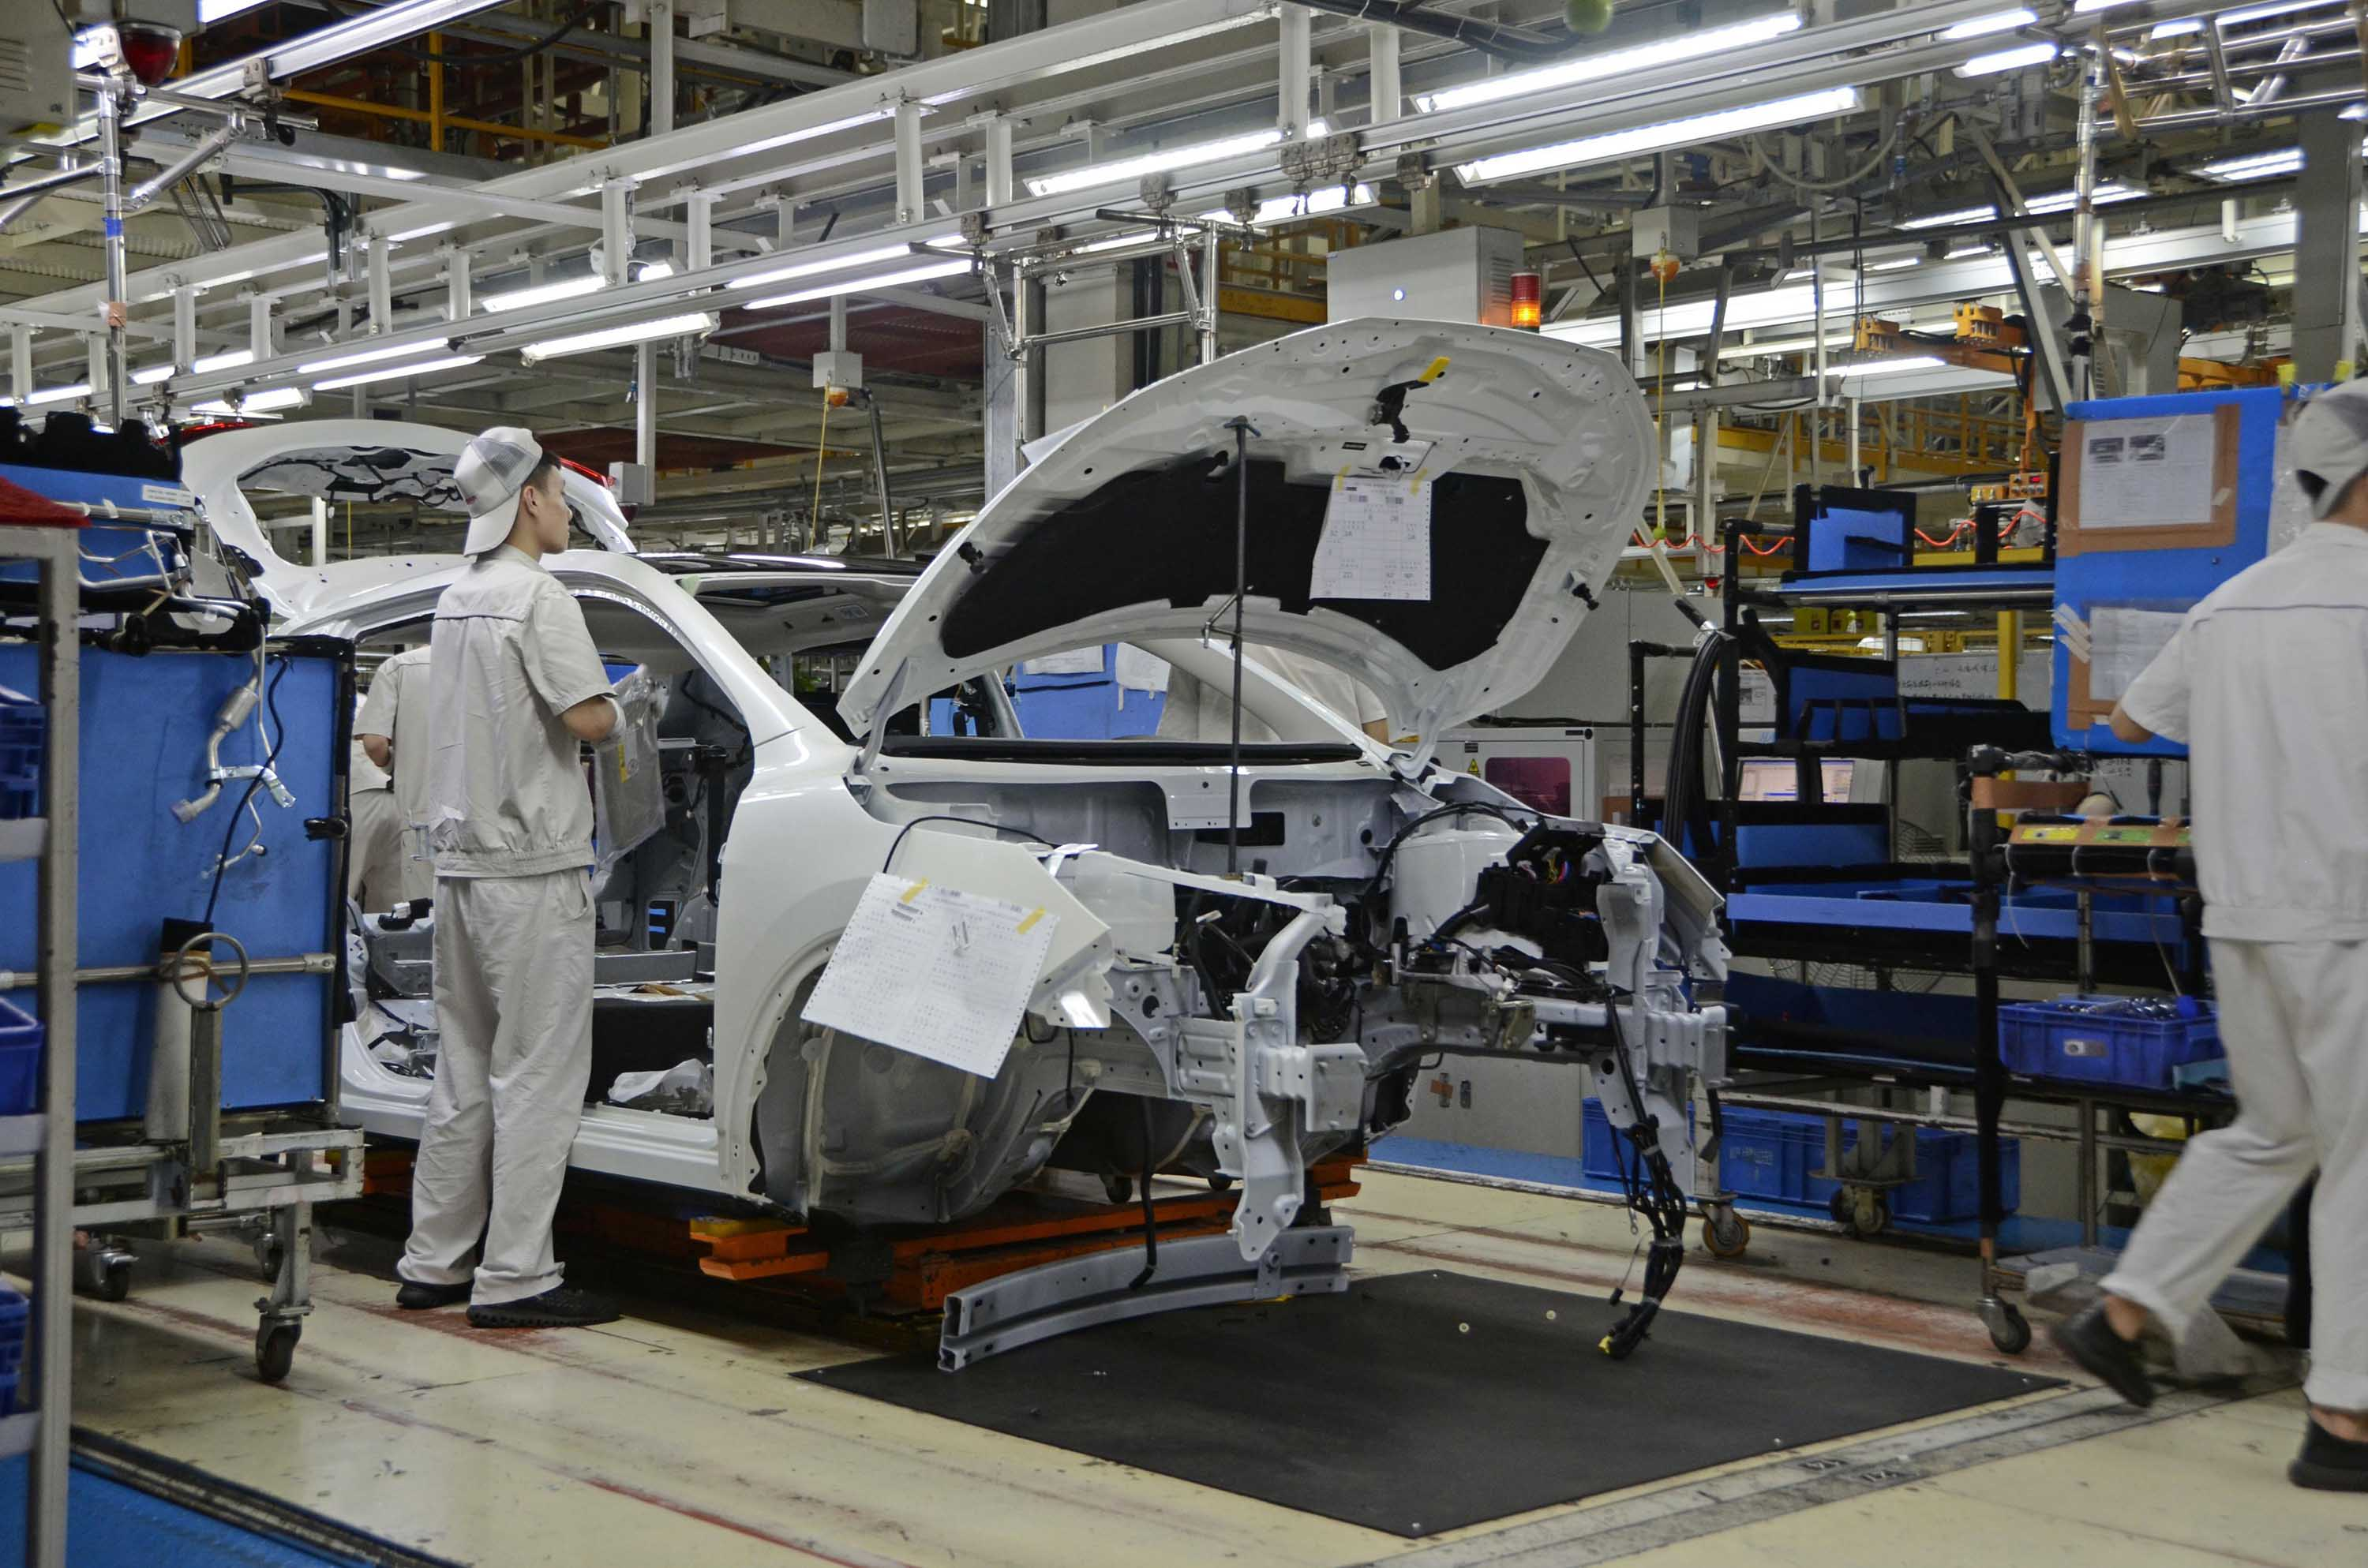 A Nissan auto assembly line is pictured at a plant in Dalian, China in July 2019.